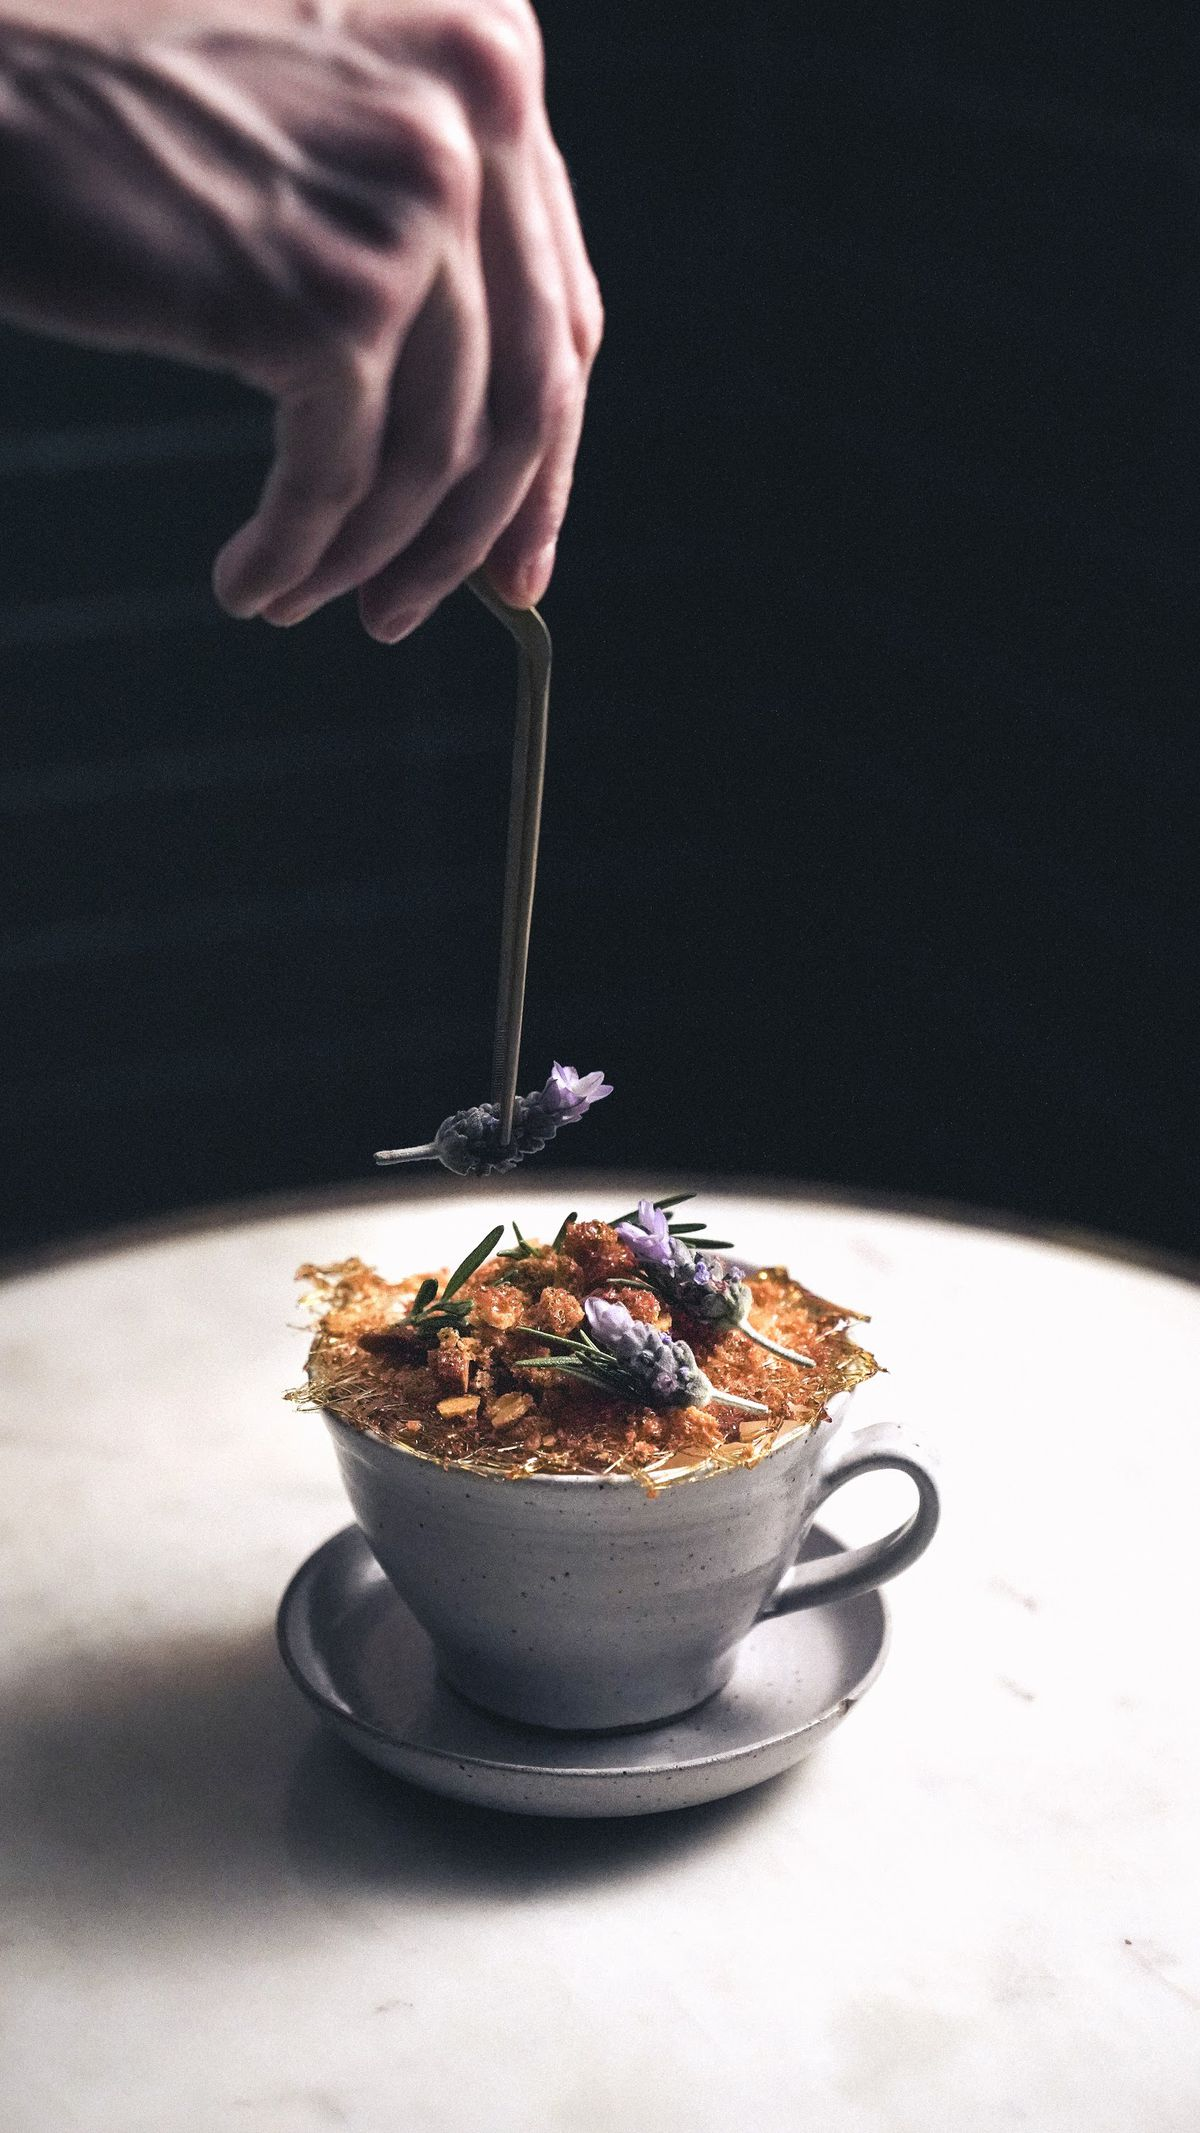 A latte is adorned with a layer of light brown crackling, while a hand off-screen uses tweezers to place a flower on top